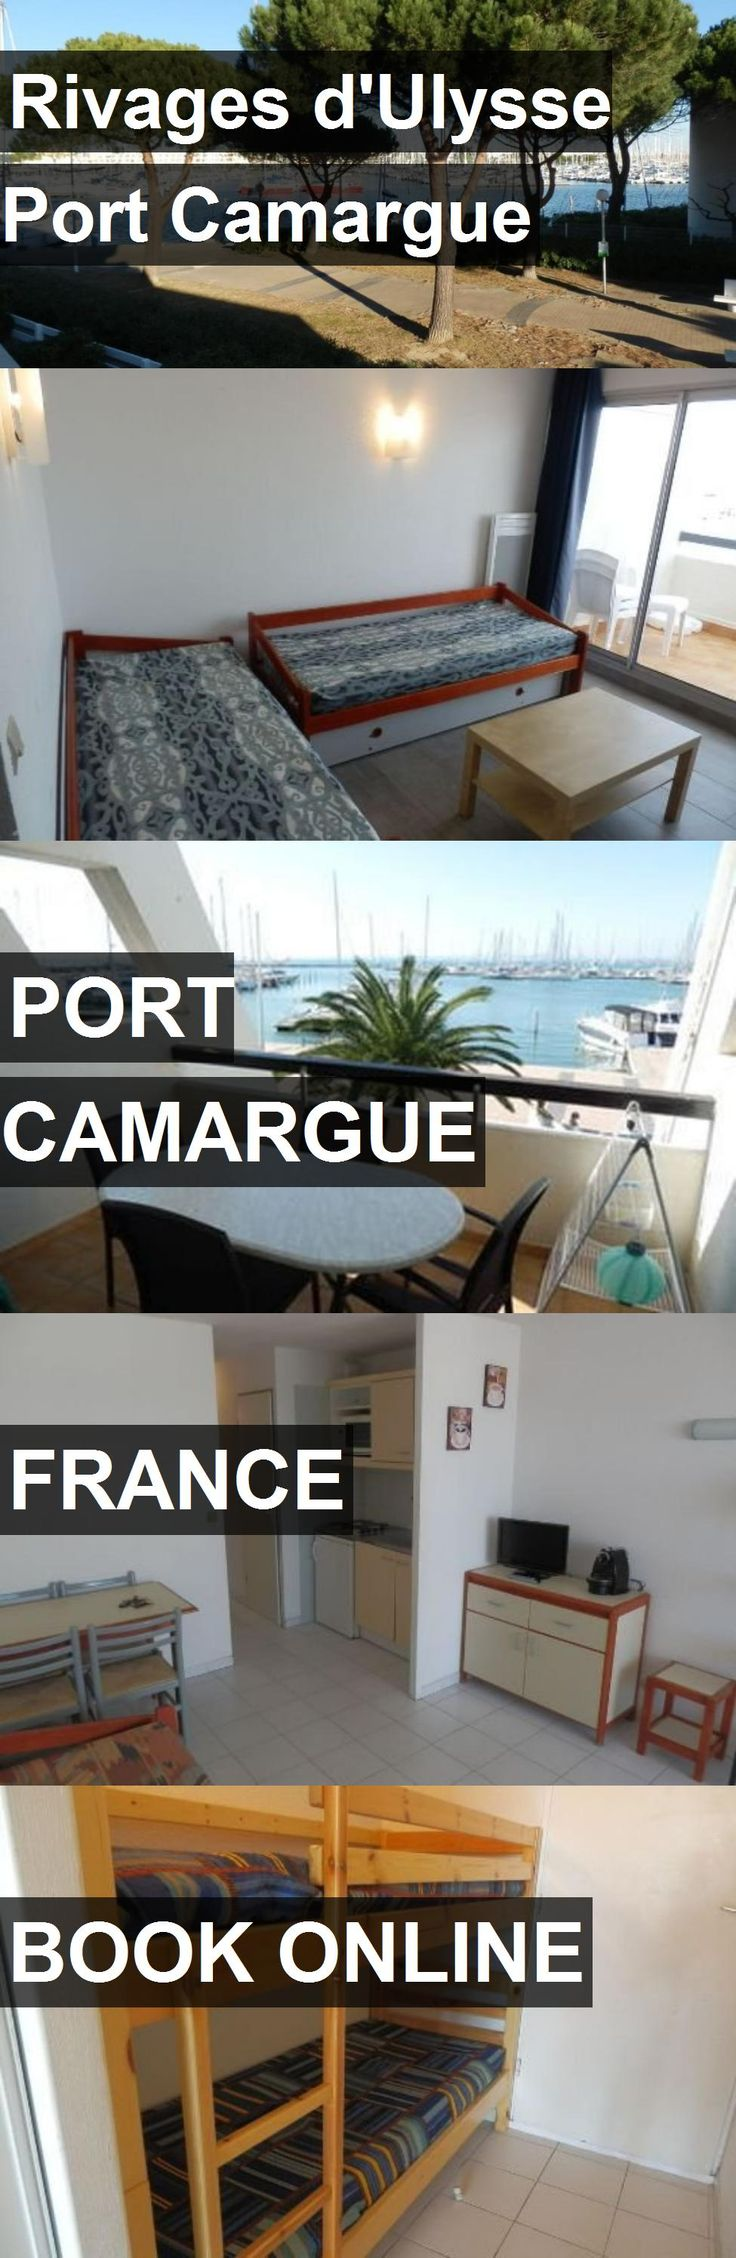 Hotel Rivages d'Ulysse Port Camargue in Port Camargue, France. For more information, photos, reviews and best prices please follow the link. #France #PortCamargue #travel #vacation #hotel